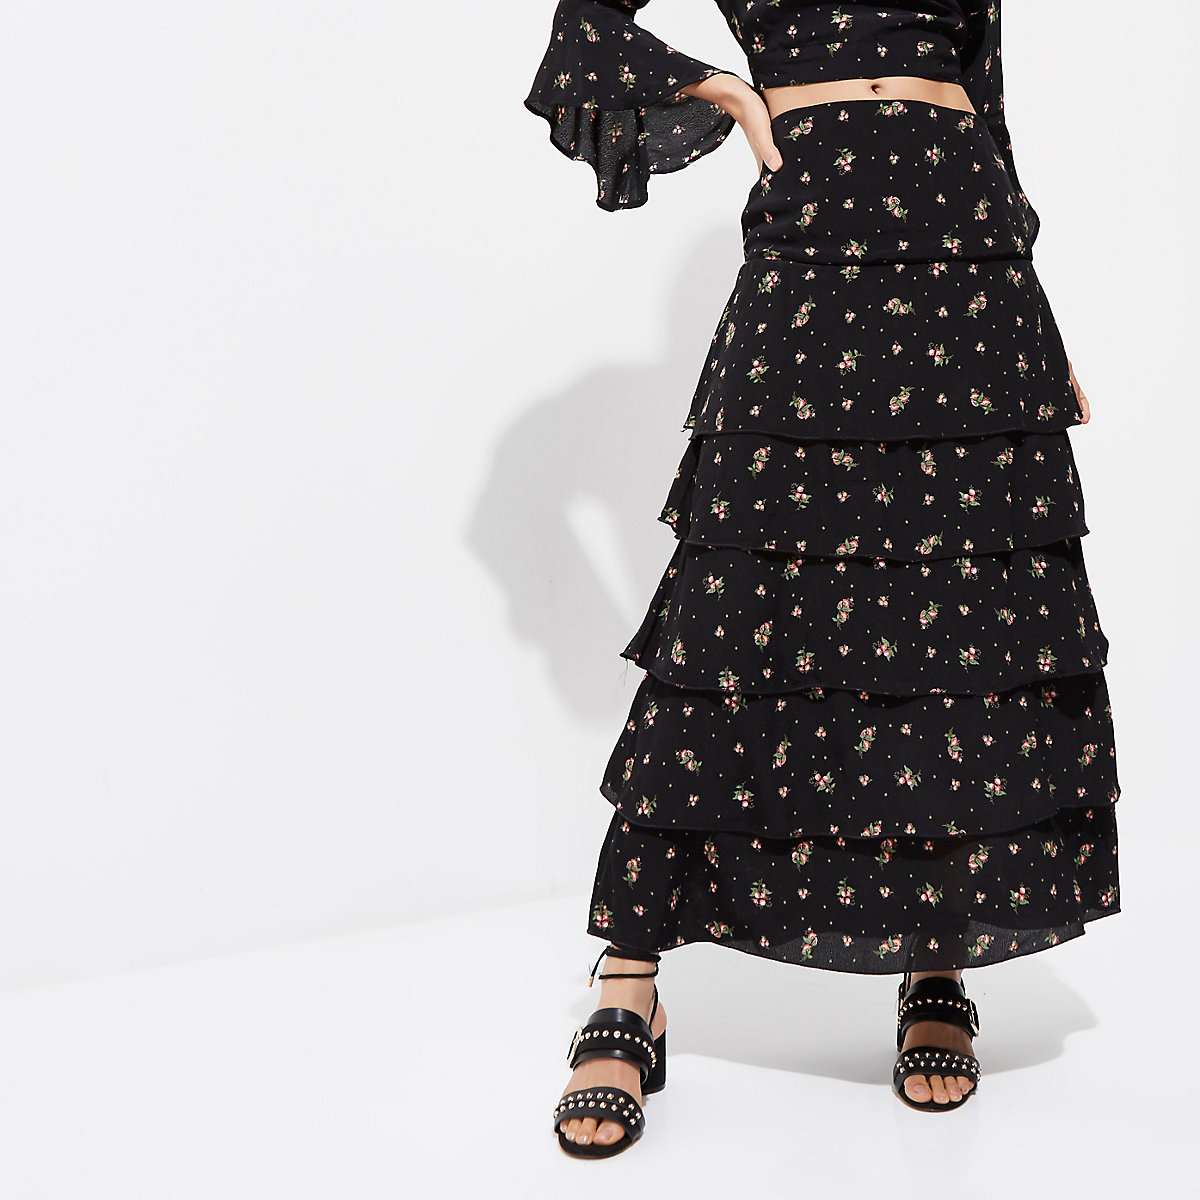 30222bdcfe5 Black ditsy floral print tiered maxi skirt - Maxi Skirts - Skirts ...